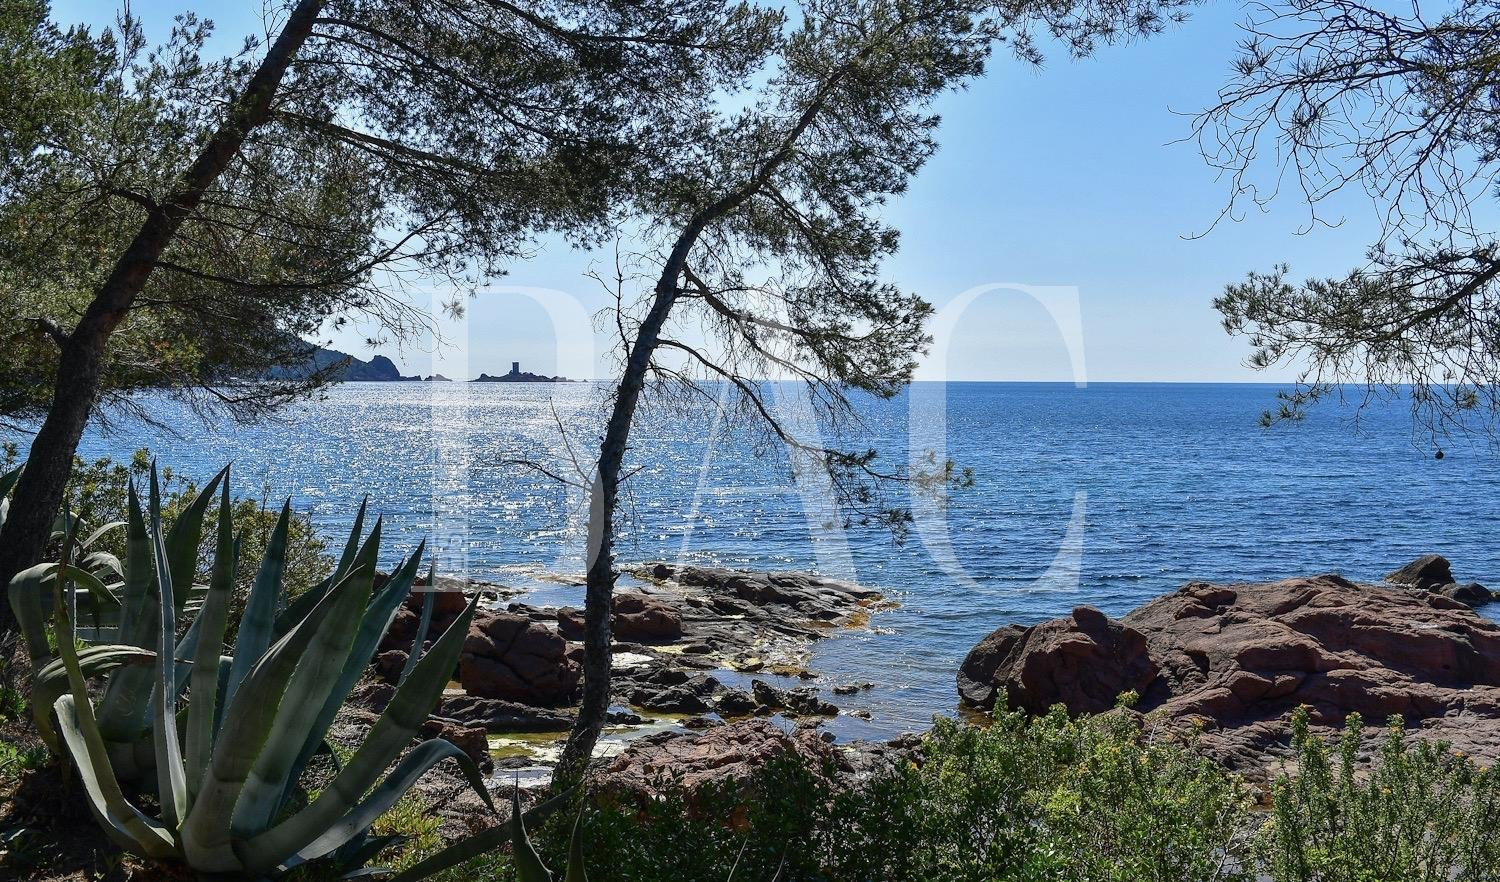 Saint-Raphaël, project feet in the water of exception halfway between Saint-Tropez and Cannes.